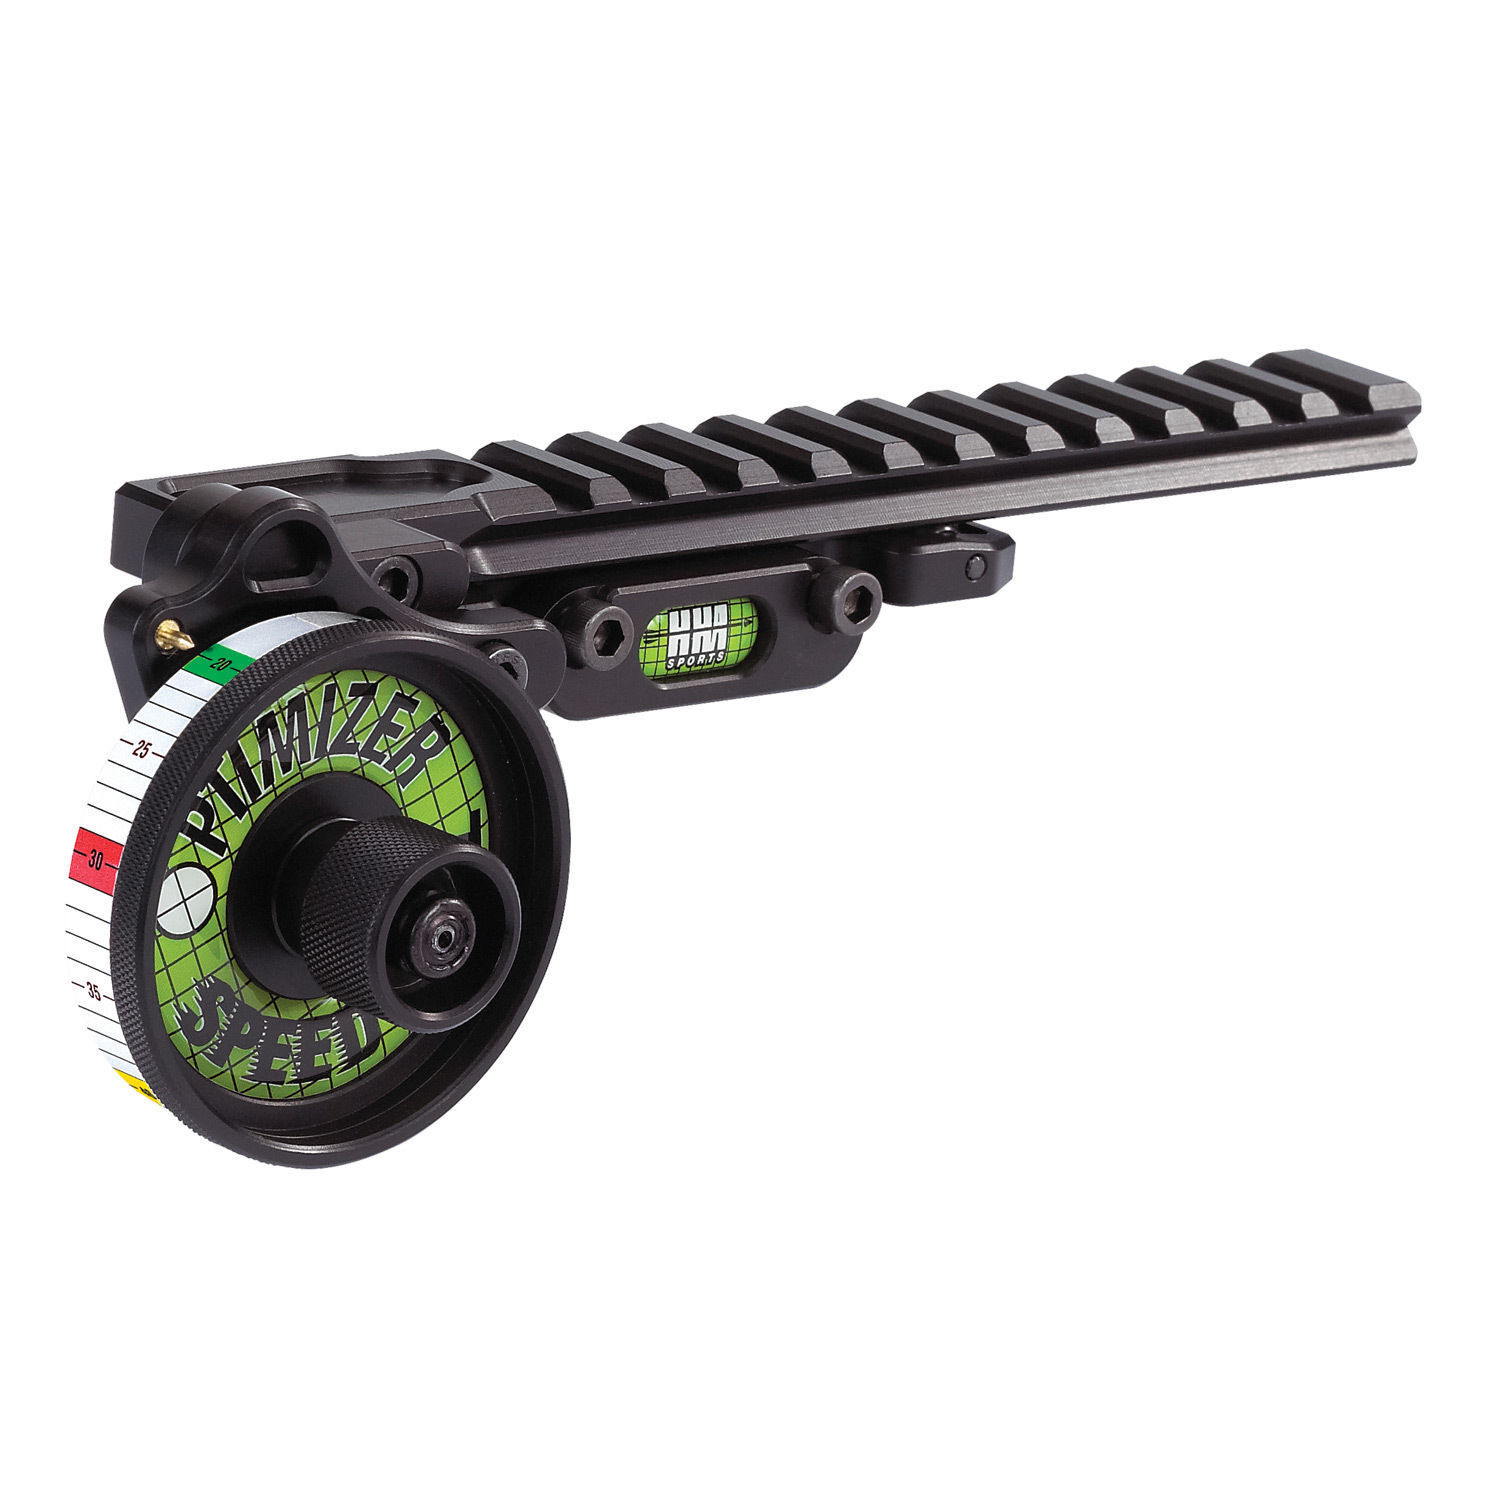 HHA Archery Optimizer Lite Cross Bow vista montaje de marcado rápido